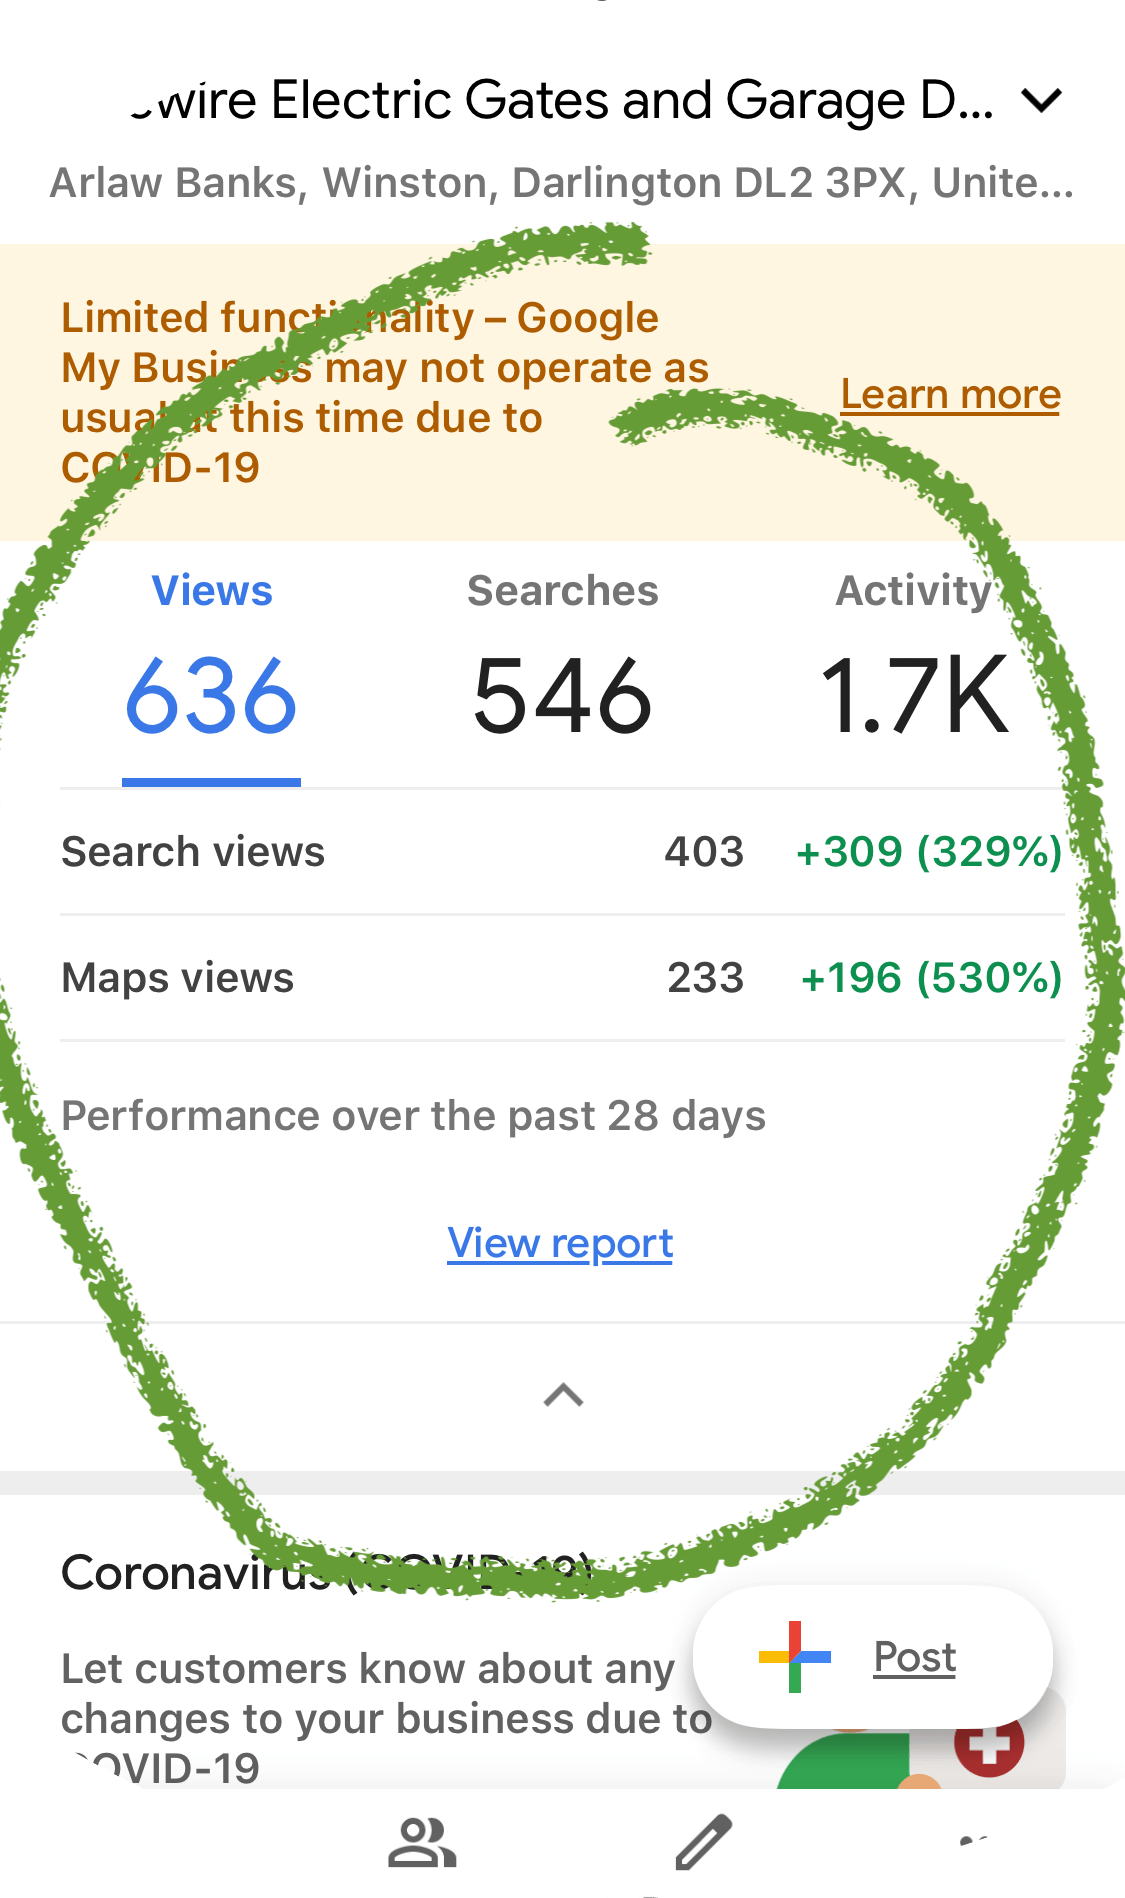 Search-Views-Increased-by-300